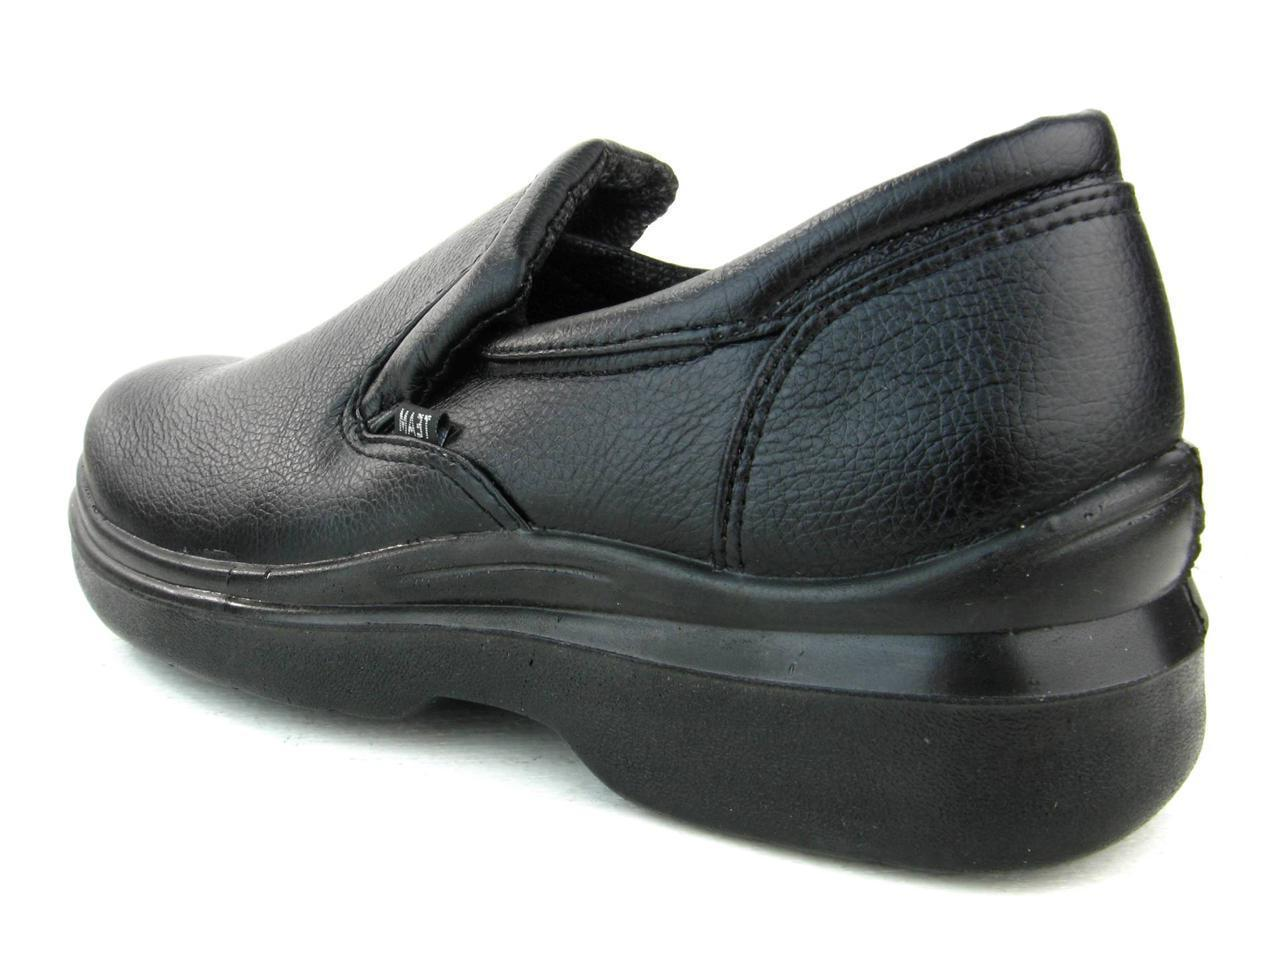 Men's Oil Resistant Kitchen Work Slip-On